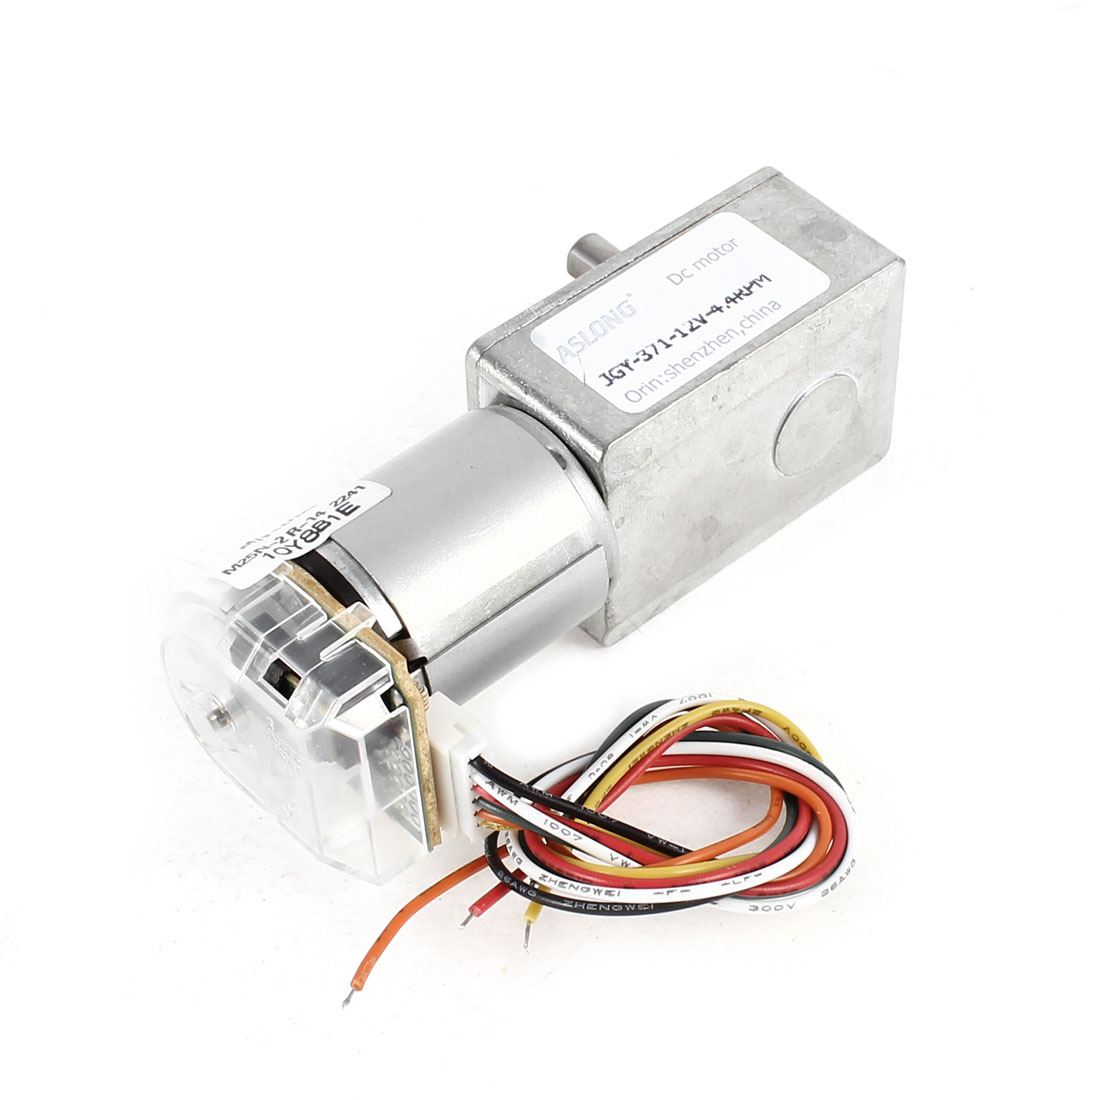 DC 12V 4.4RPM Encoder Speed Measuring Disk Turbine Worm Micro Reduction Motor